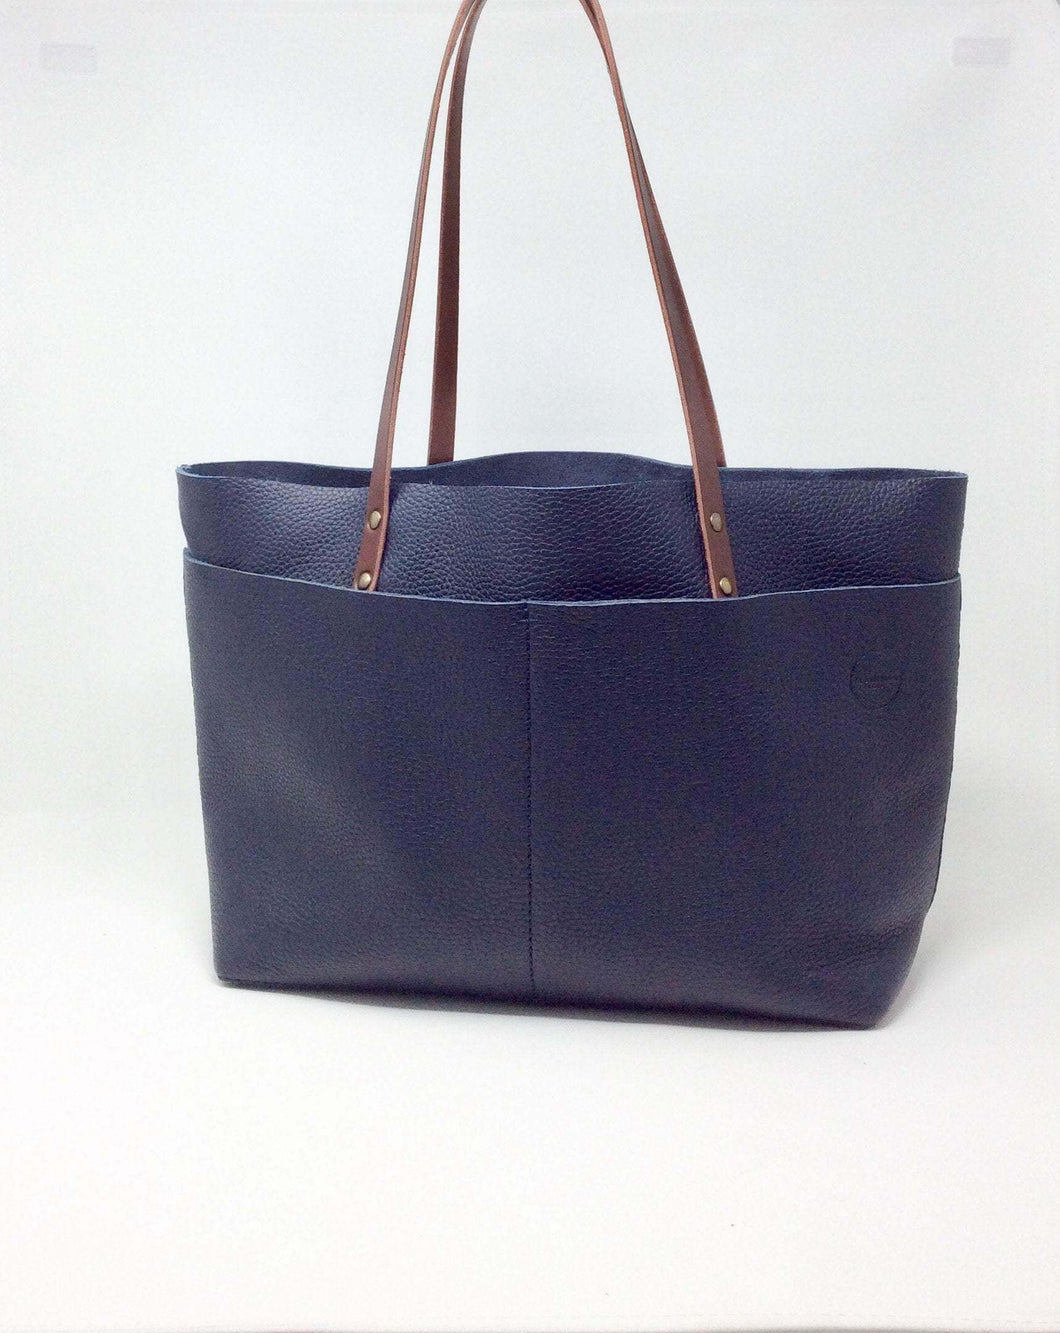 Dark Blue Leather Tote bag - Bol